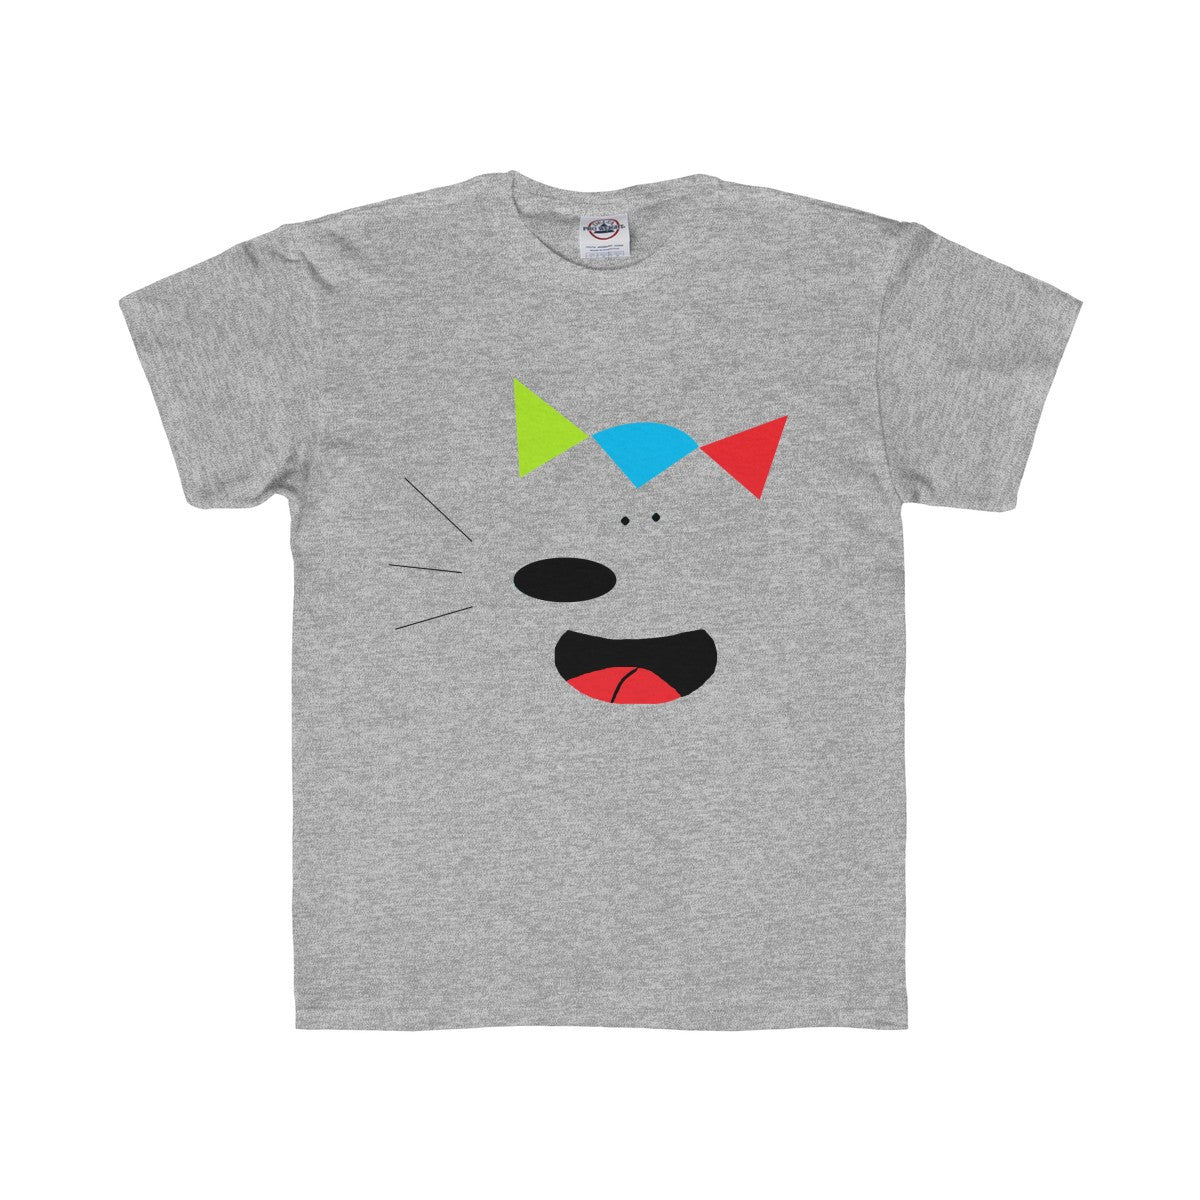 The Happy Rocco Youth Regular Fit Tee